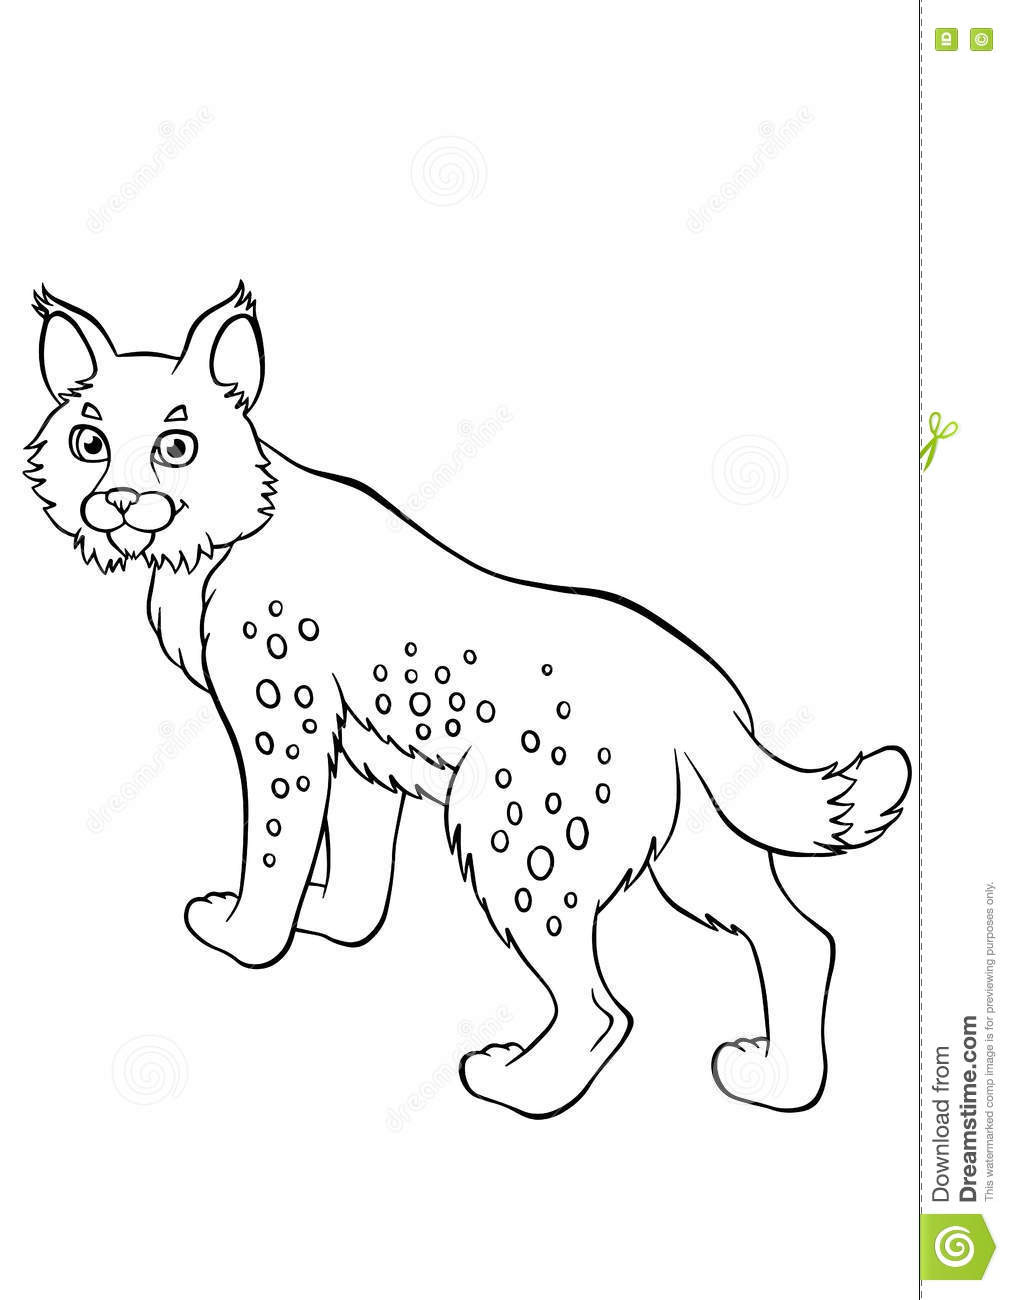 Best ideas about Lynx Coloring Sheets For Girls . Save or Pin Coloring Pages Animals Little Cute Lynx Stock Vector Now.